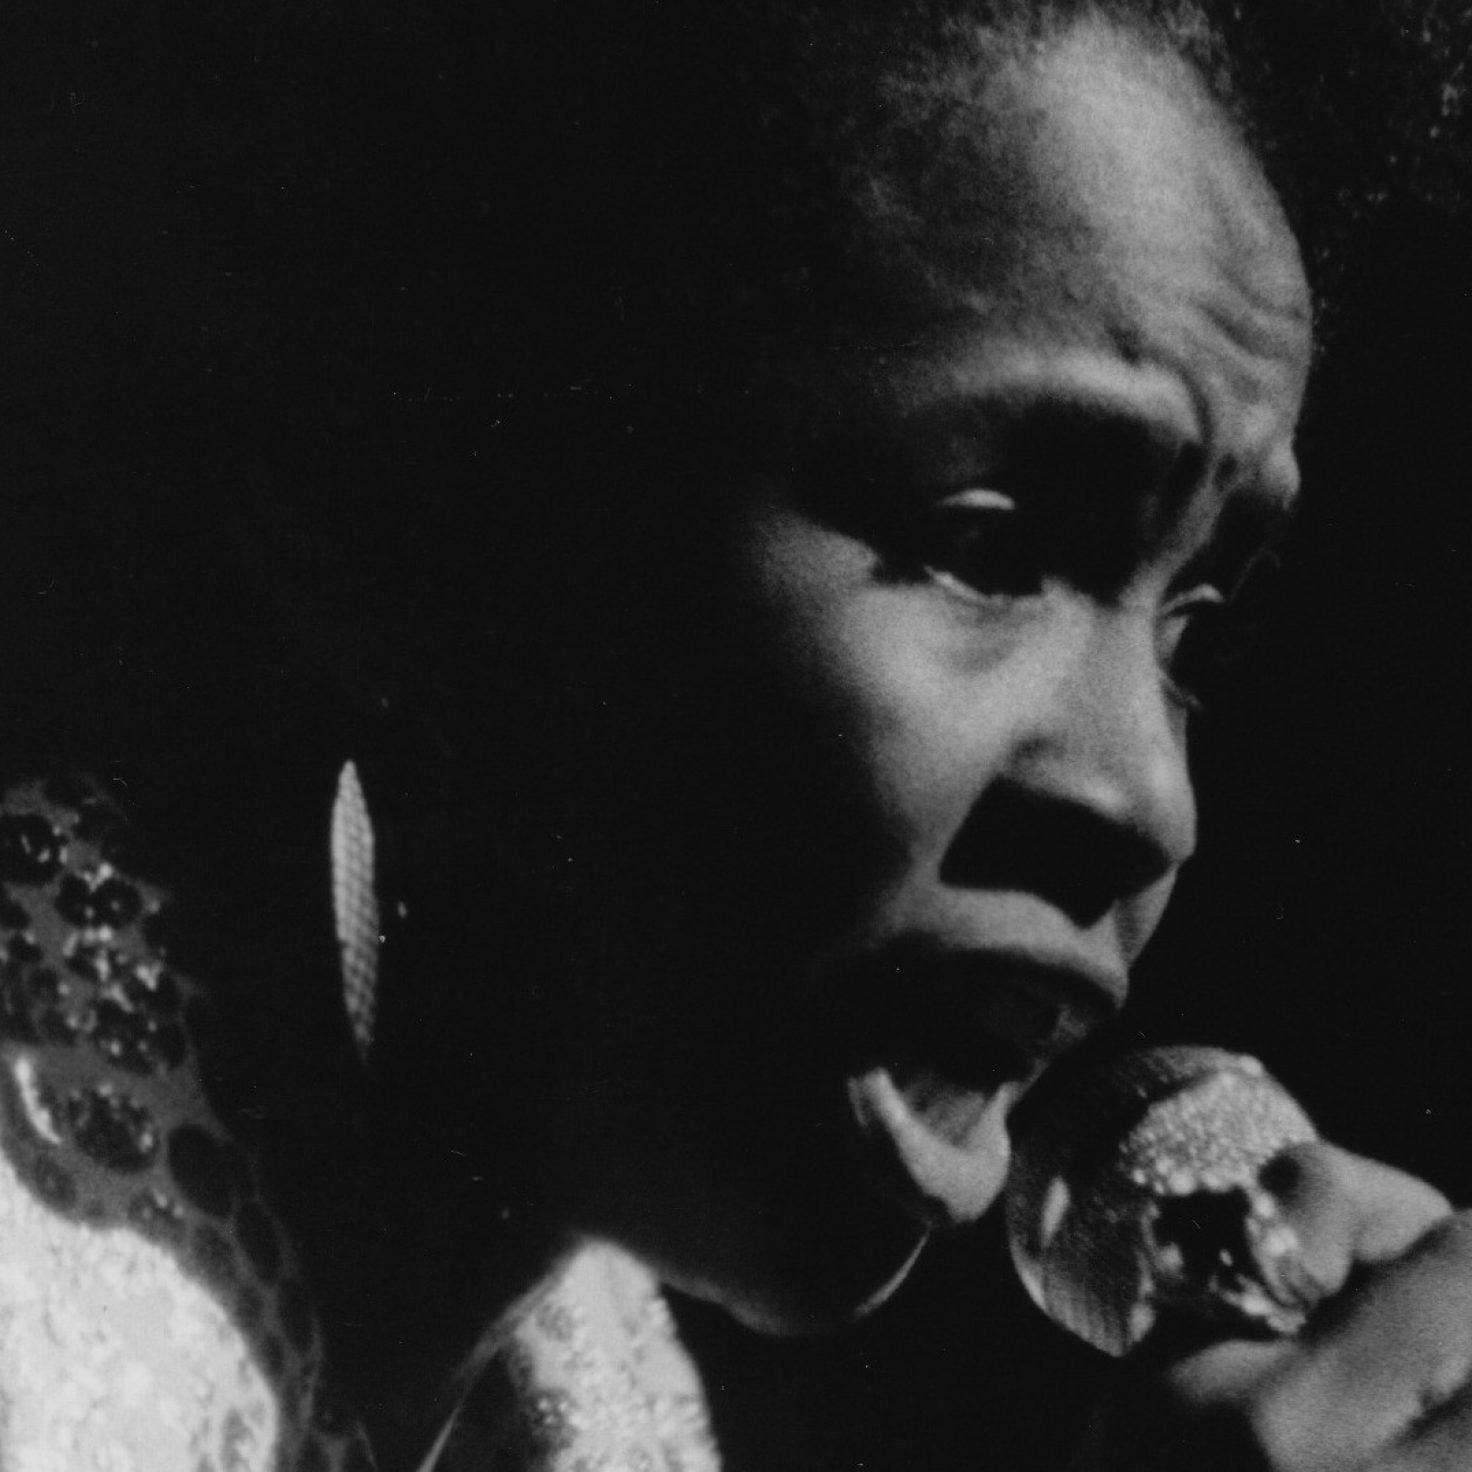 'Clean Up Woman' Singer Betty Wright Has Died